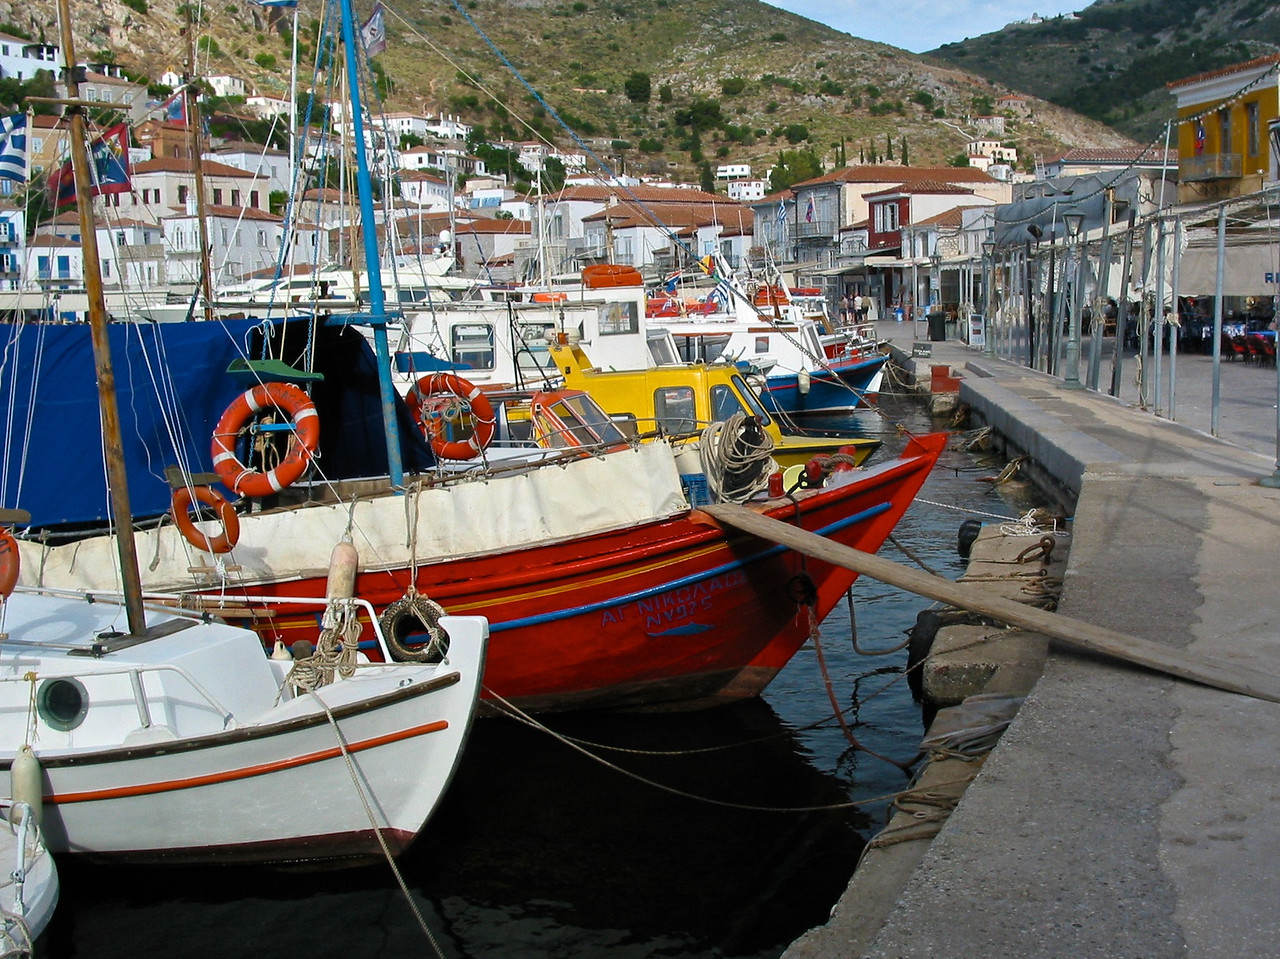 Although the island's name is derived from ancient springs known to the Ancient Greeks, it is now almost dry. Hydra previously had wells, and three new wells have been found. Today, the island imports its water by boat from the Greek mainland, but a new desalinization plant is now finished but not in operation. Many local people store winter rainfall in cisterns beneath their houses, to be used later as drinking water.